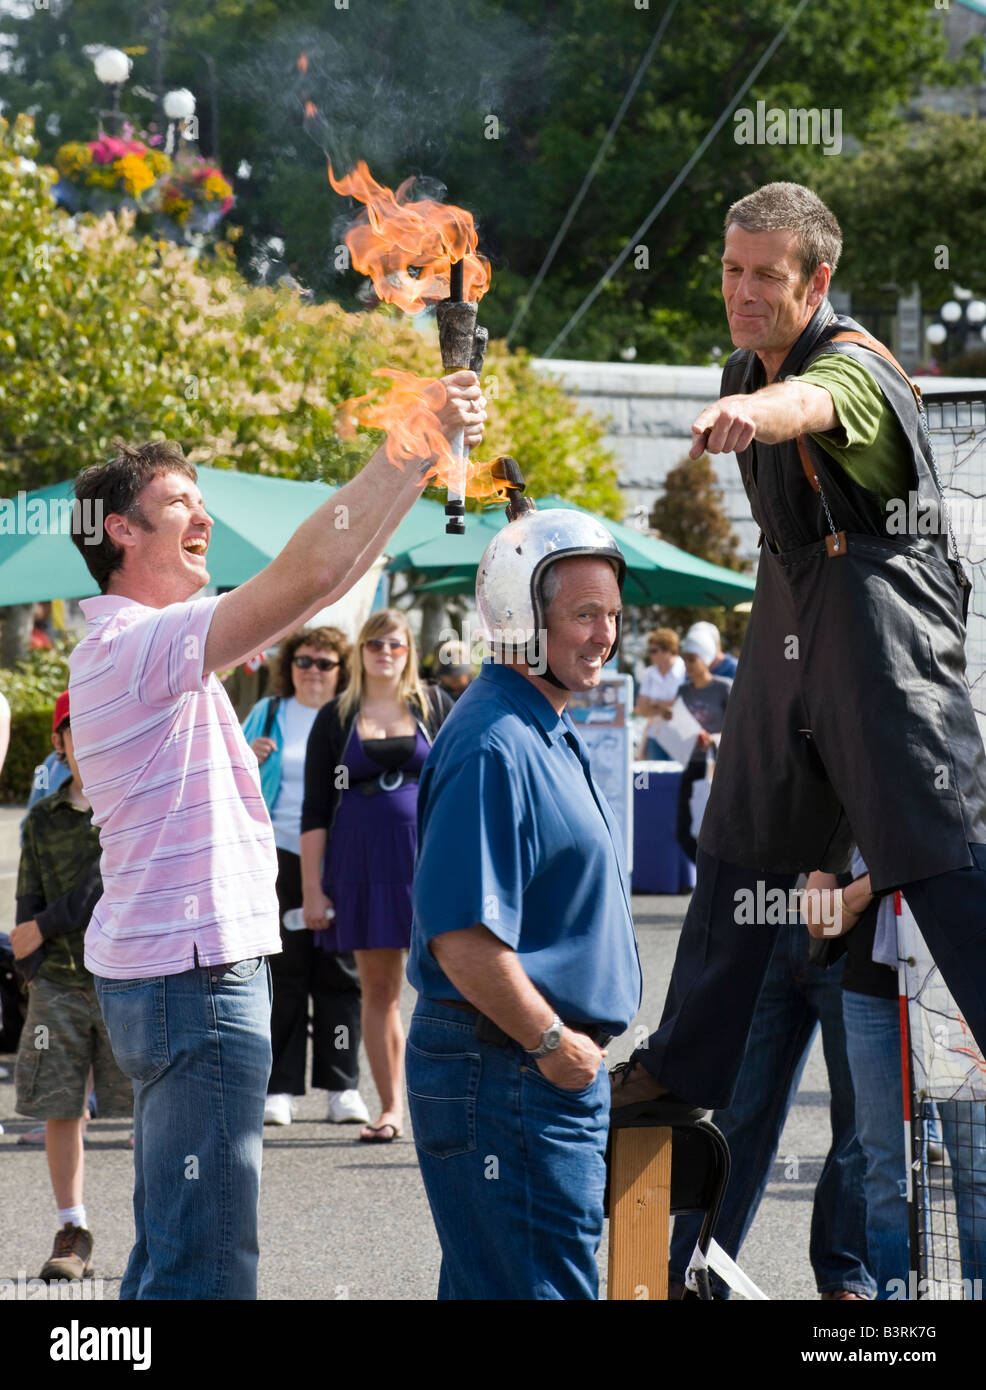 pavement artist on stilts with fire sticks at harbourfront, Victoria, Vancouver Island, British Columbia, Canada - Stock Image